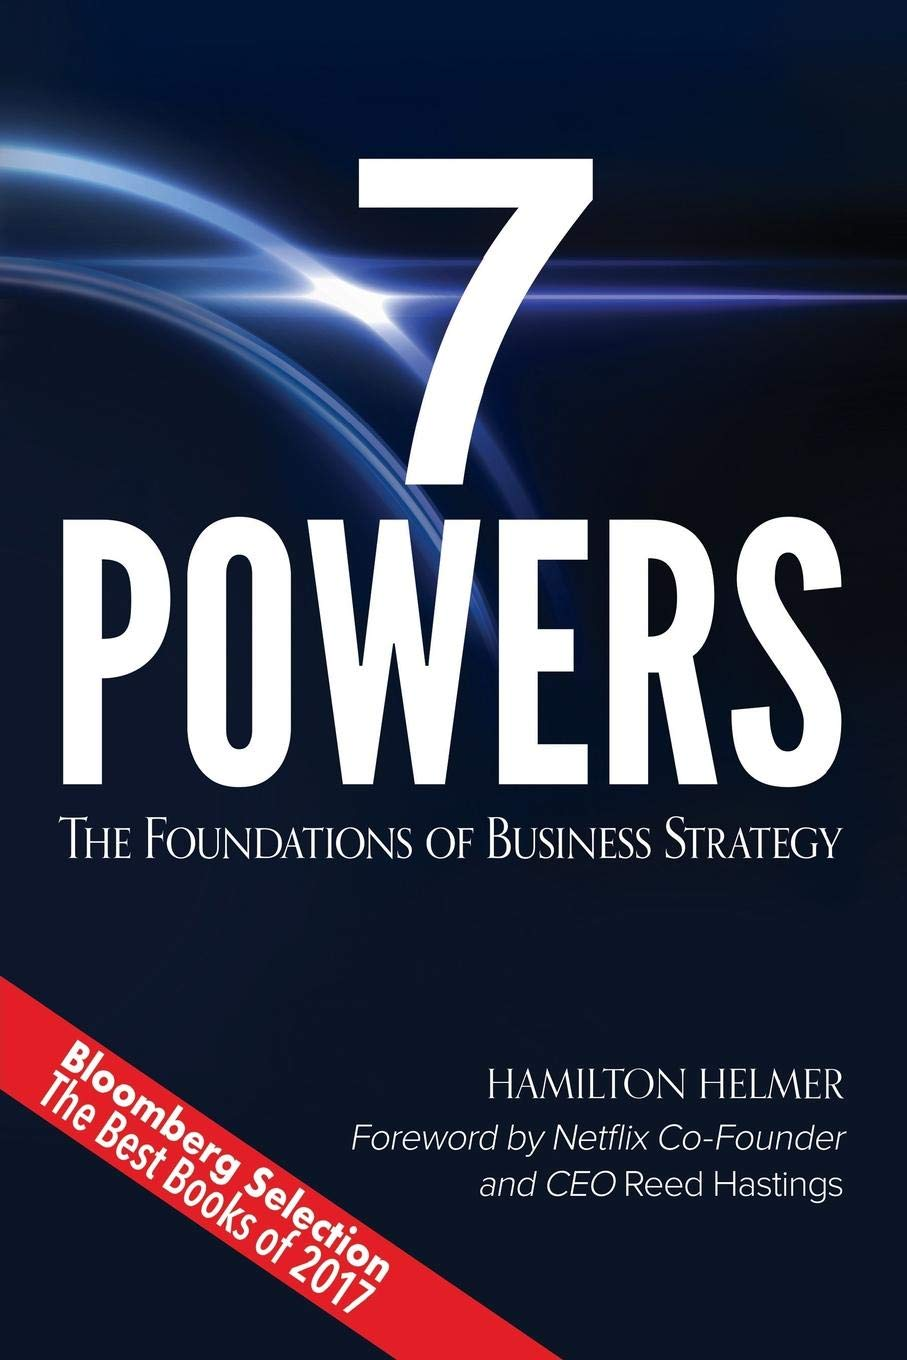 7 Powers: The Foundations of Business Strategy: Amazon.es: Hamilton Helmer: Libros en idiomas extranjeros